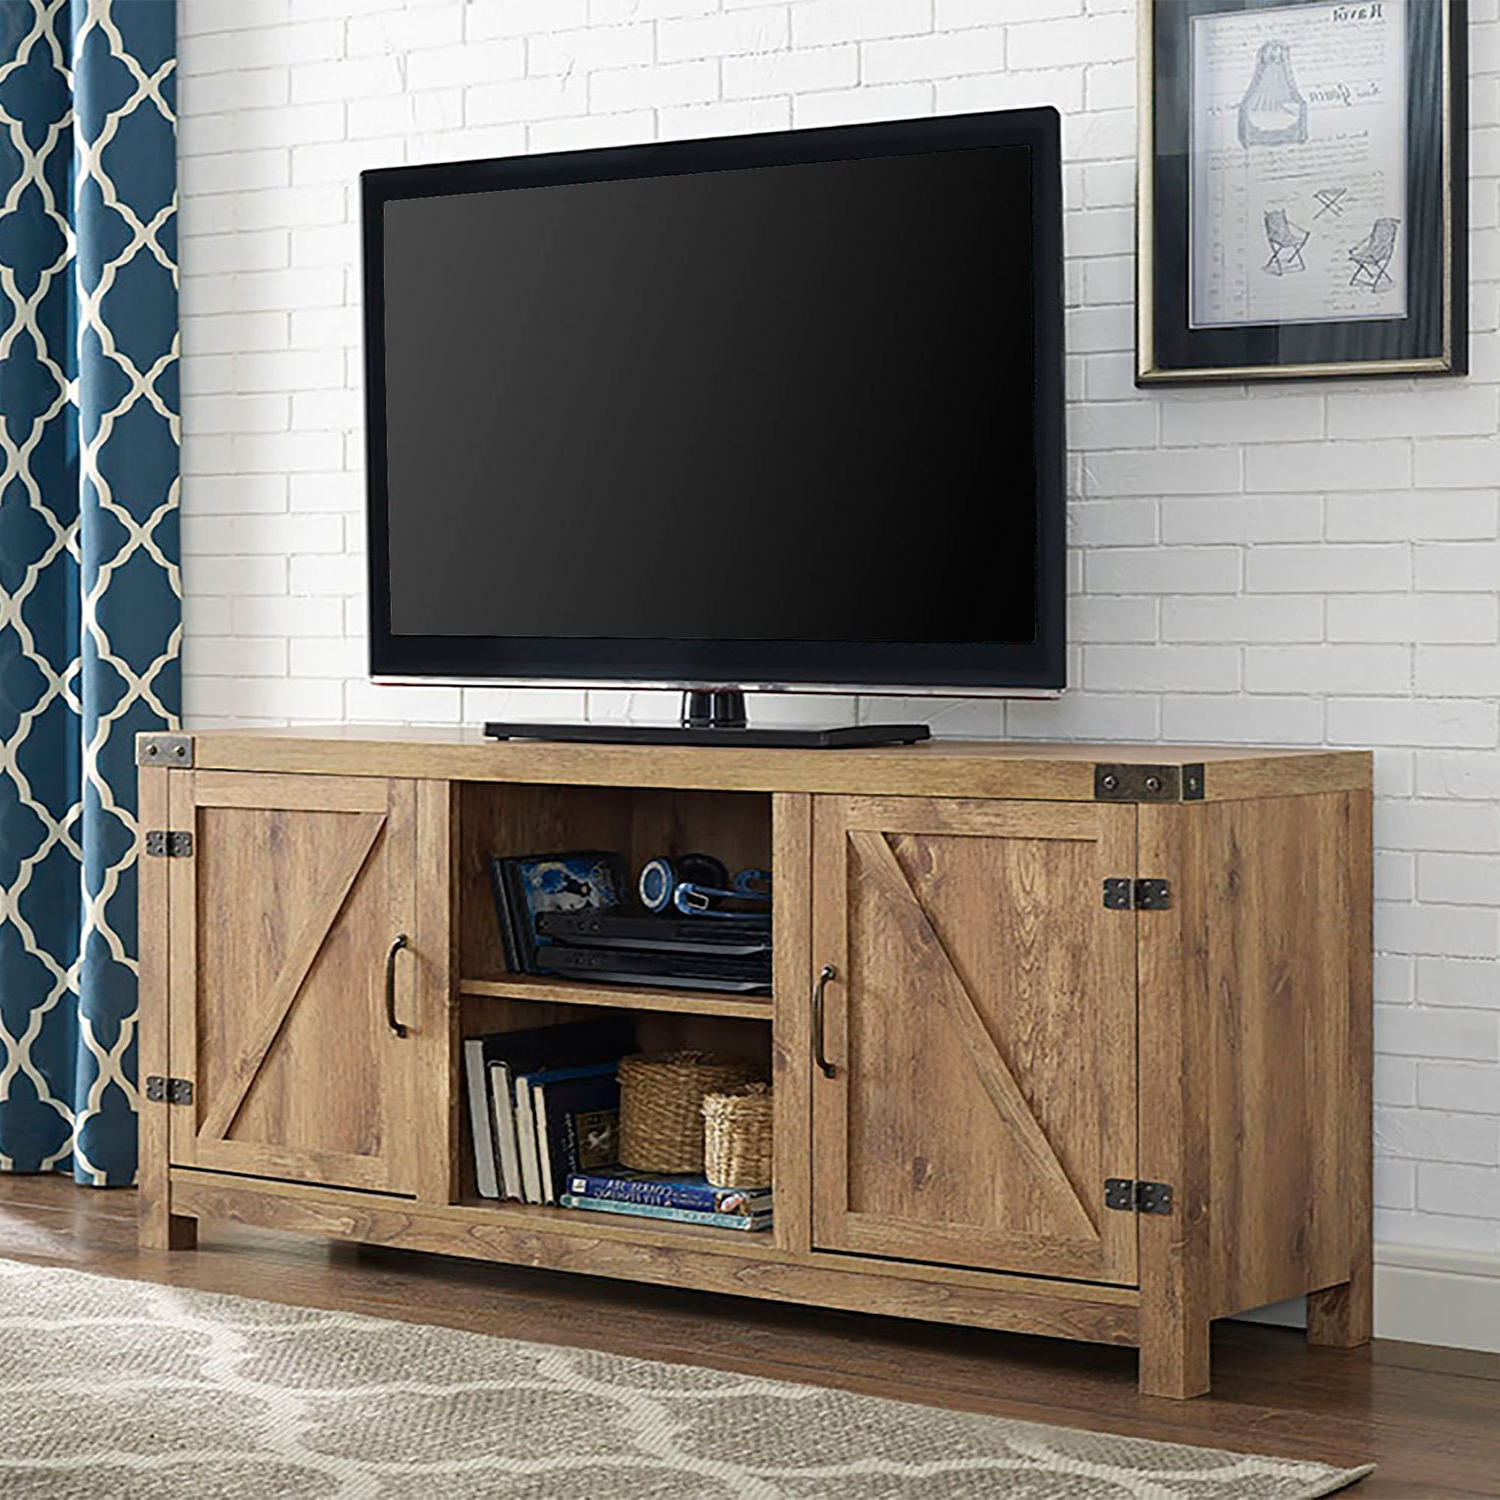 Tv Console | Canyon Creek 84 Inch Entertainment Console And Hutch Inside Canyon 74 Inch Tv Stands (View 11 of 20)